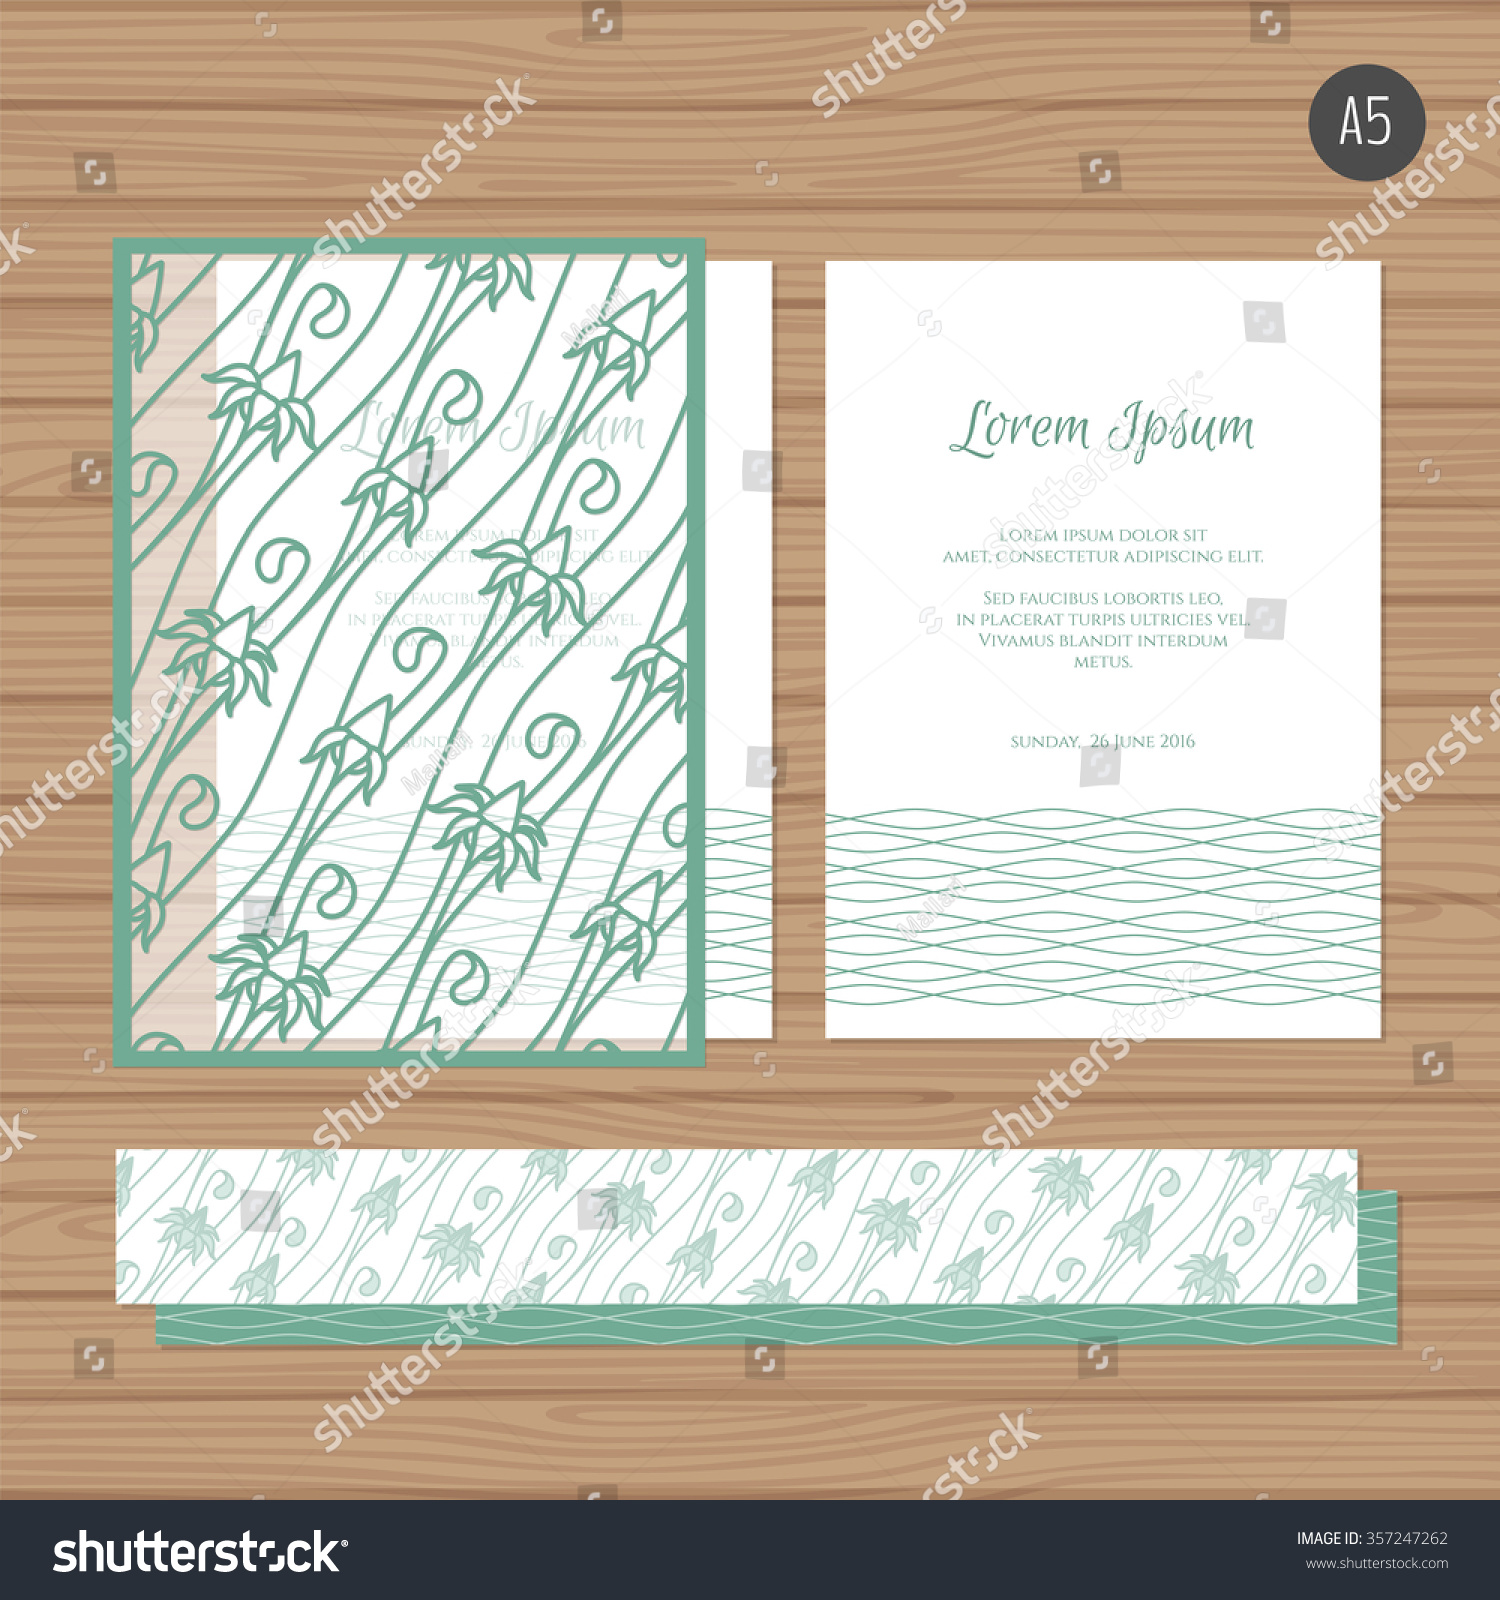 Invitation Paper Stock Images